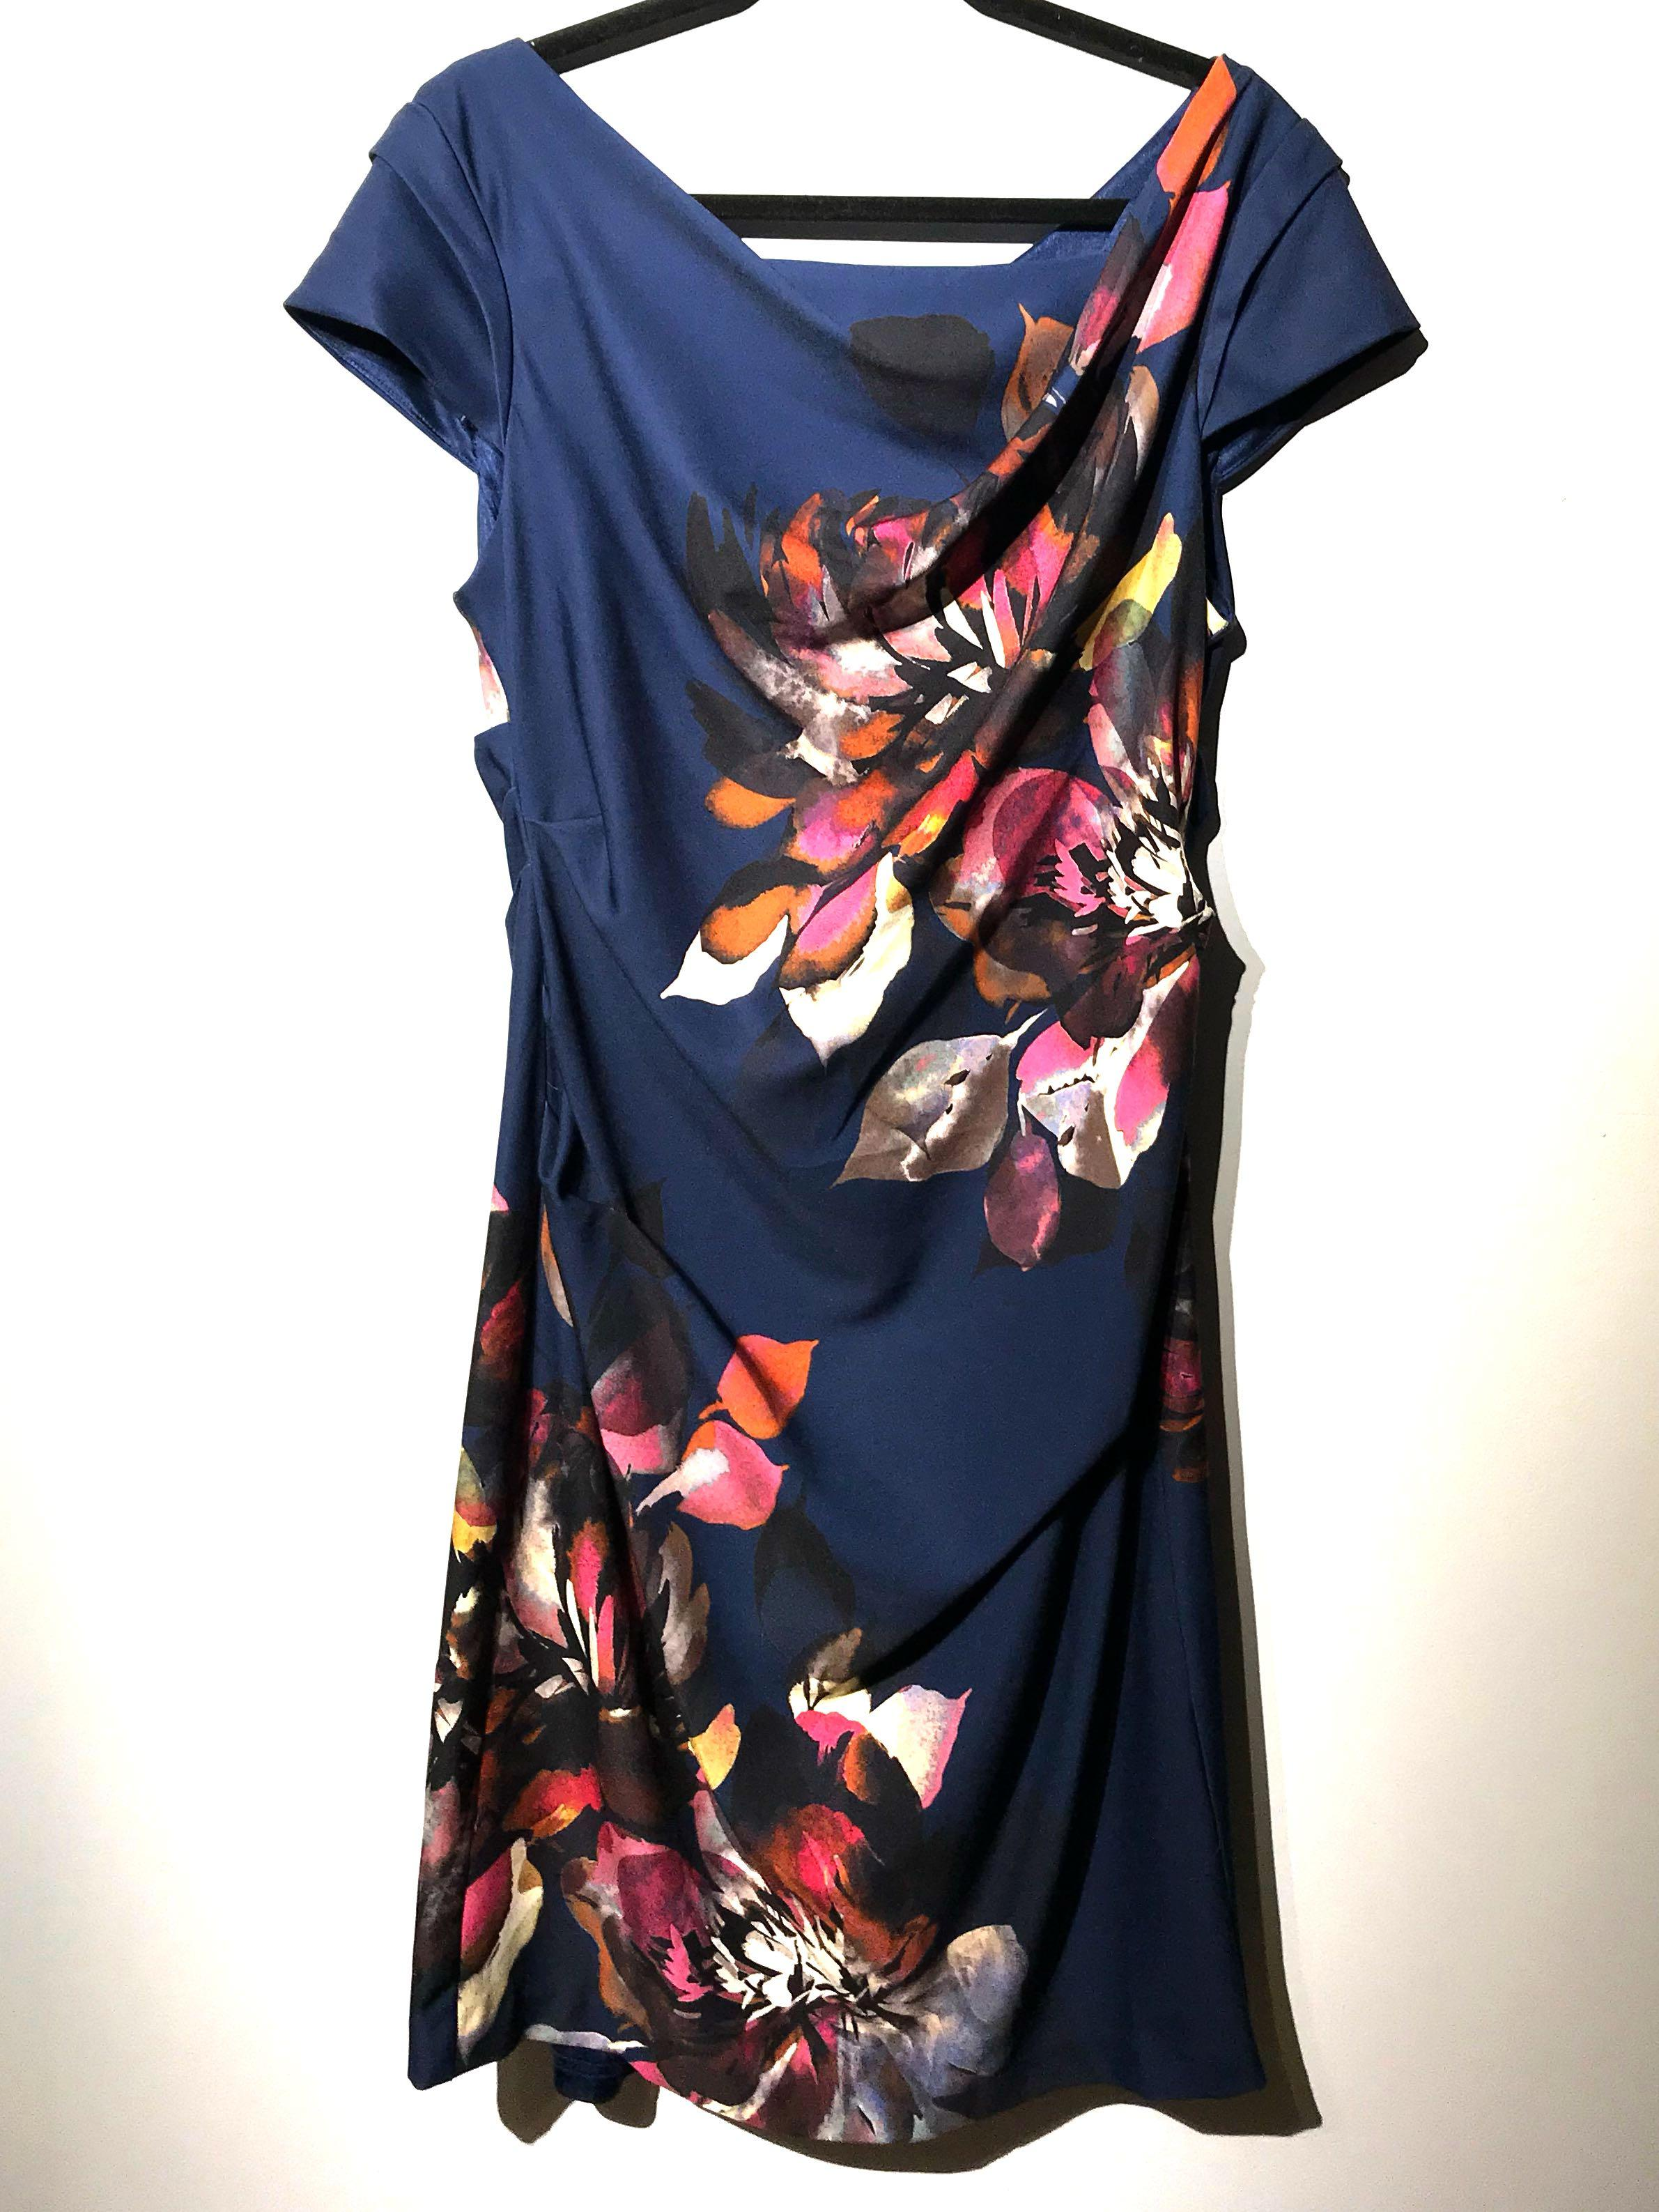 Adrianna Papell Floral Magnolia Cowlneck Dress Sz 8 Medium